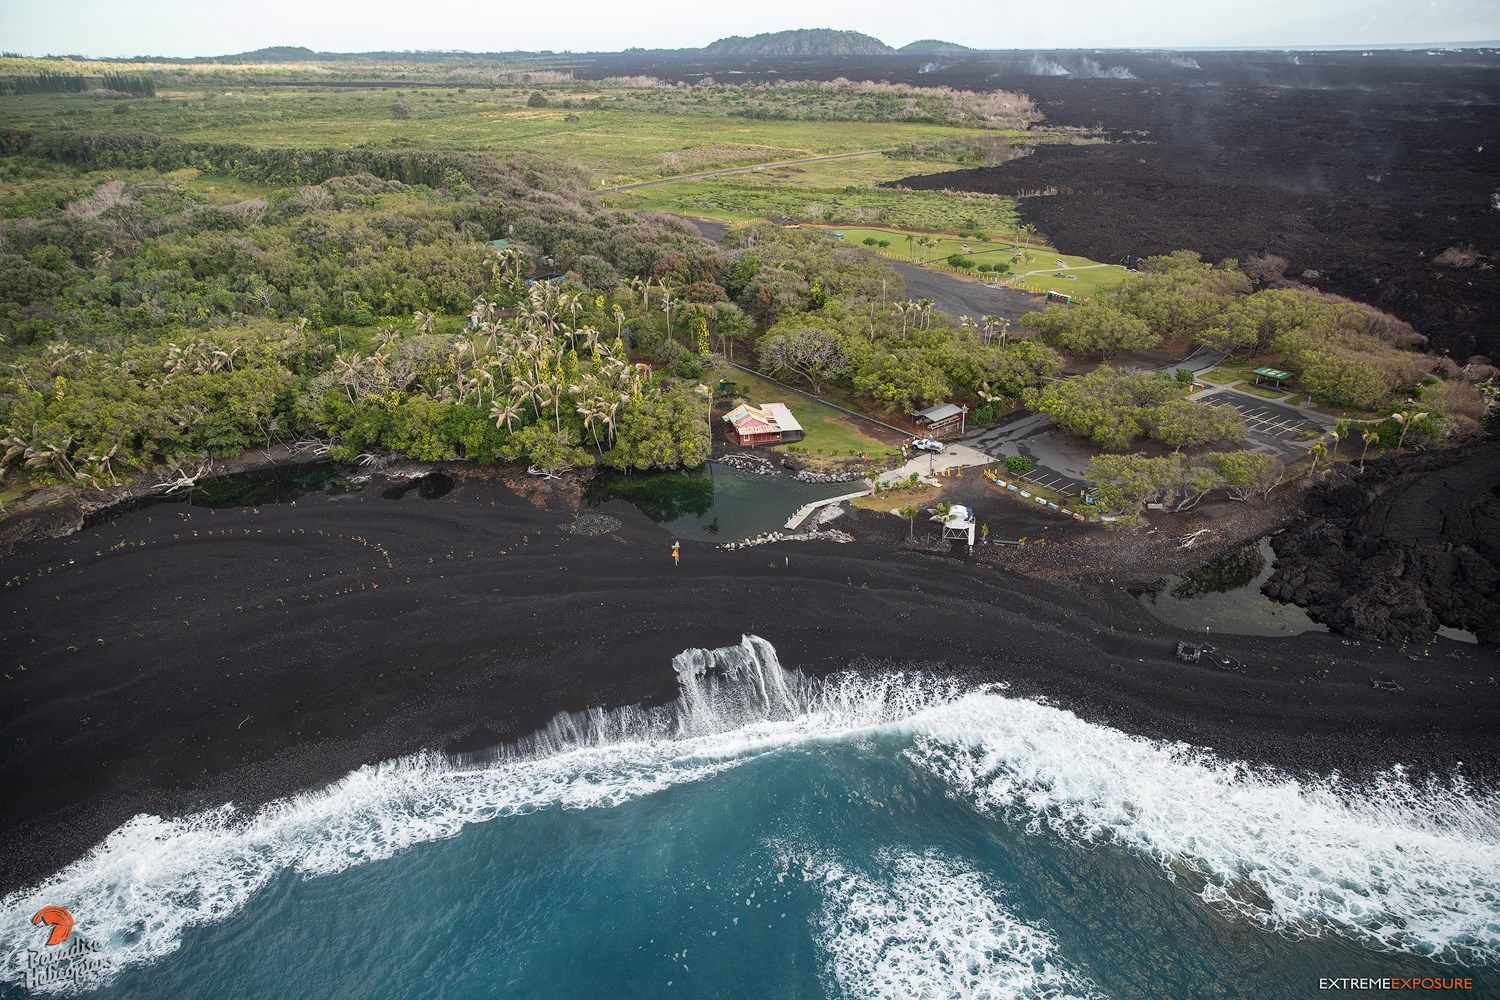 Kilauea East Rift Zone - Pohoiky bay and its new volcanic sand beach pierced by some water bodies trapped - photo Bruce Omori 25.01.2019